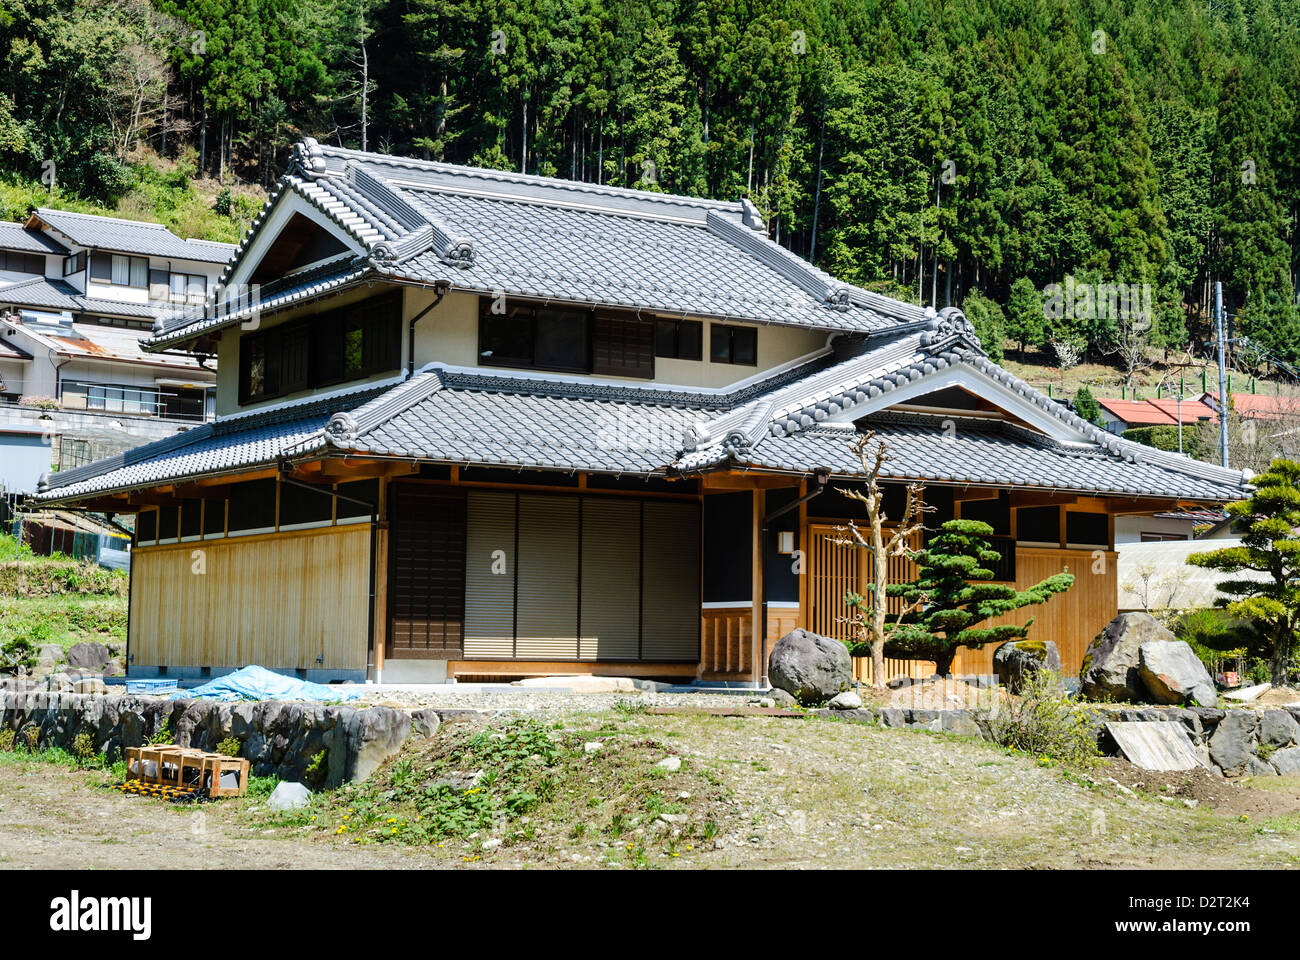 Old Wooden Japanese House In A Village Deep The Rural